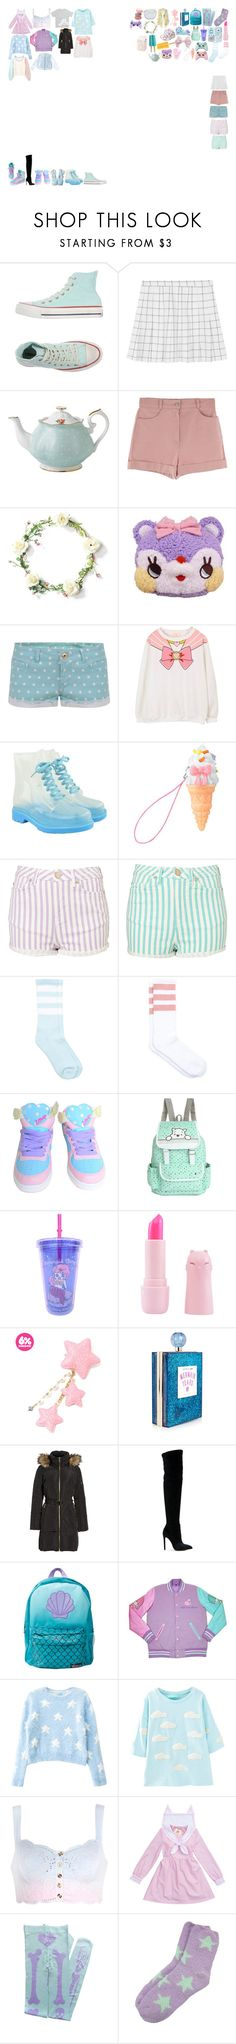 """""""Packing for Tour"""" by kaelighofficial ❤ liked on Polyvore featuring Converse, Royal Albert, TALLY WEiJL, cutekawaii, MICHAEL Michael Kors, Gianni Renzi and Disney"""